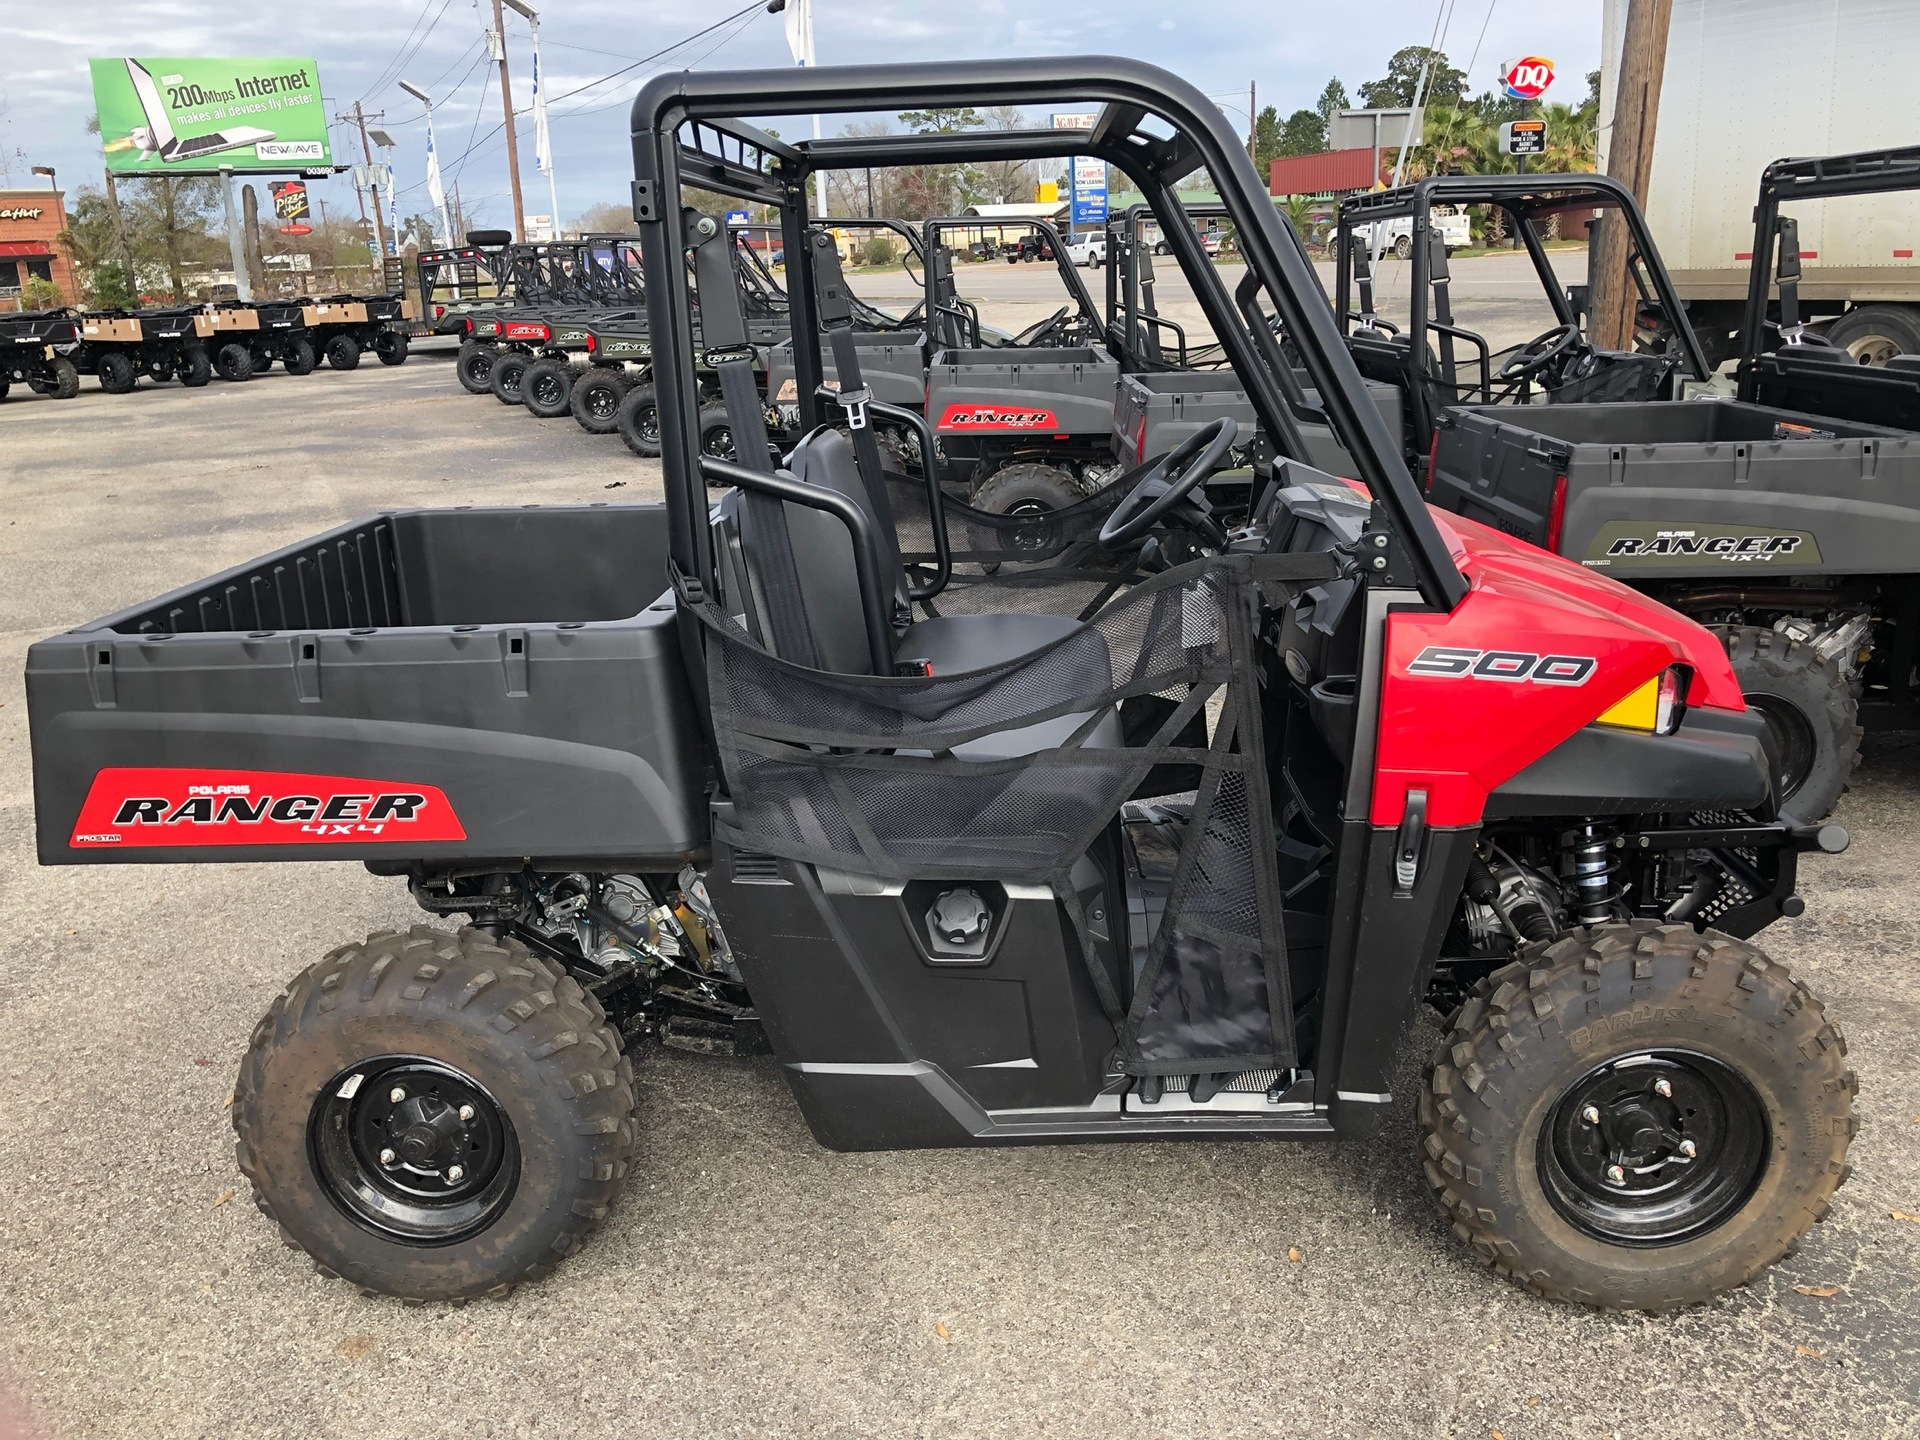 2019 Polaris Ranger 500 for sale 2059